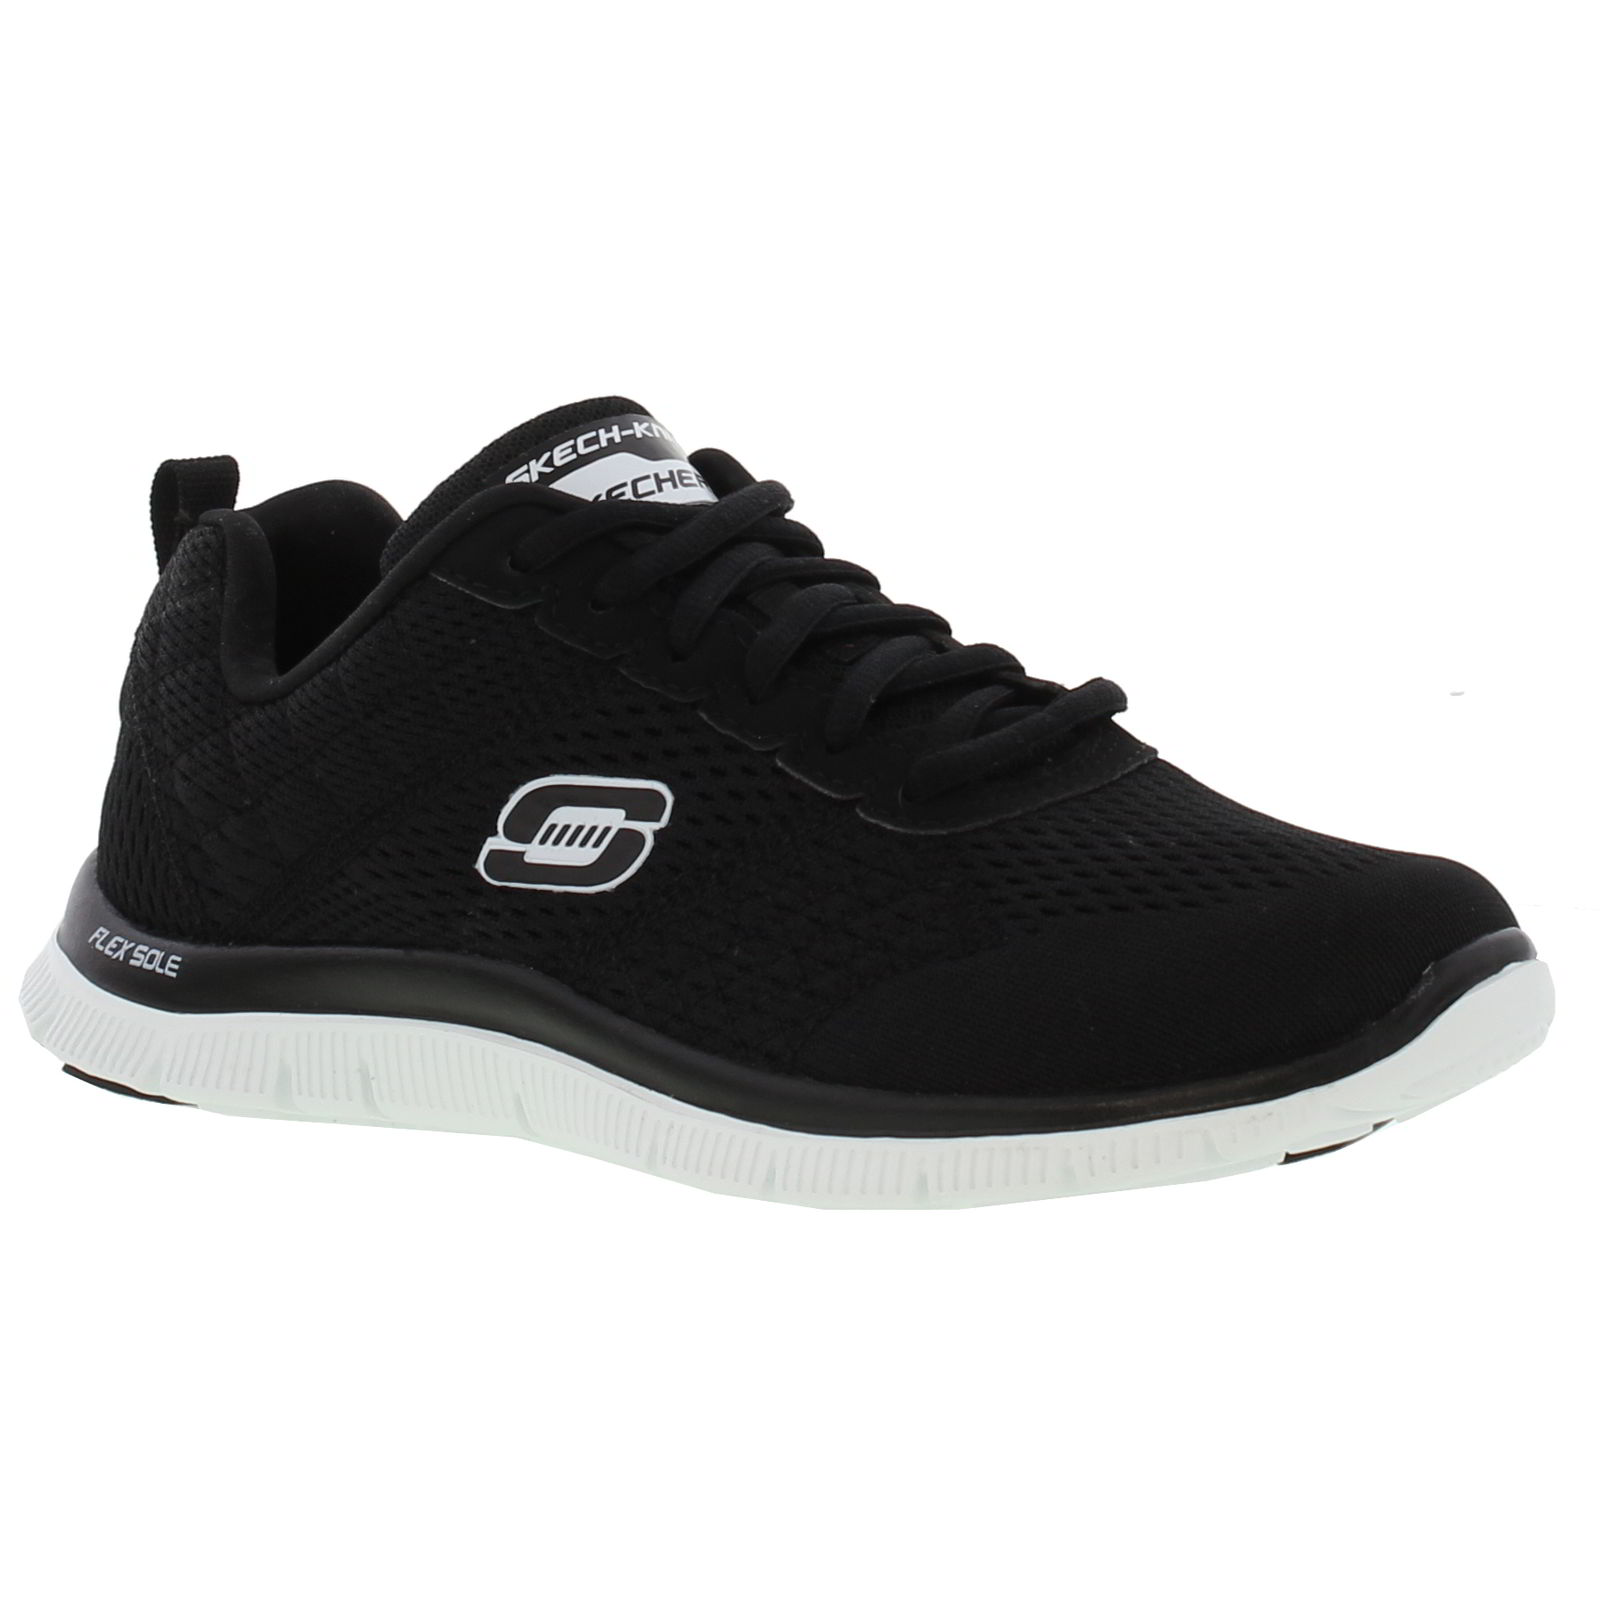 05adcf458c08 skechers obvious choice sale   OFF74% Discounted